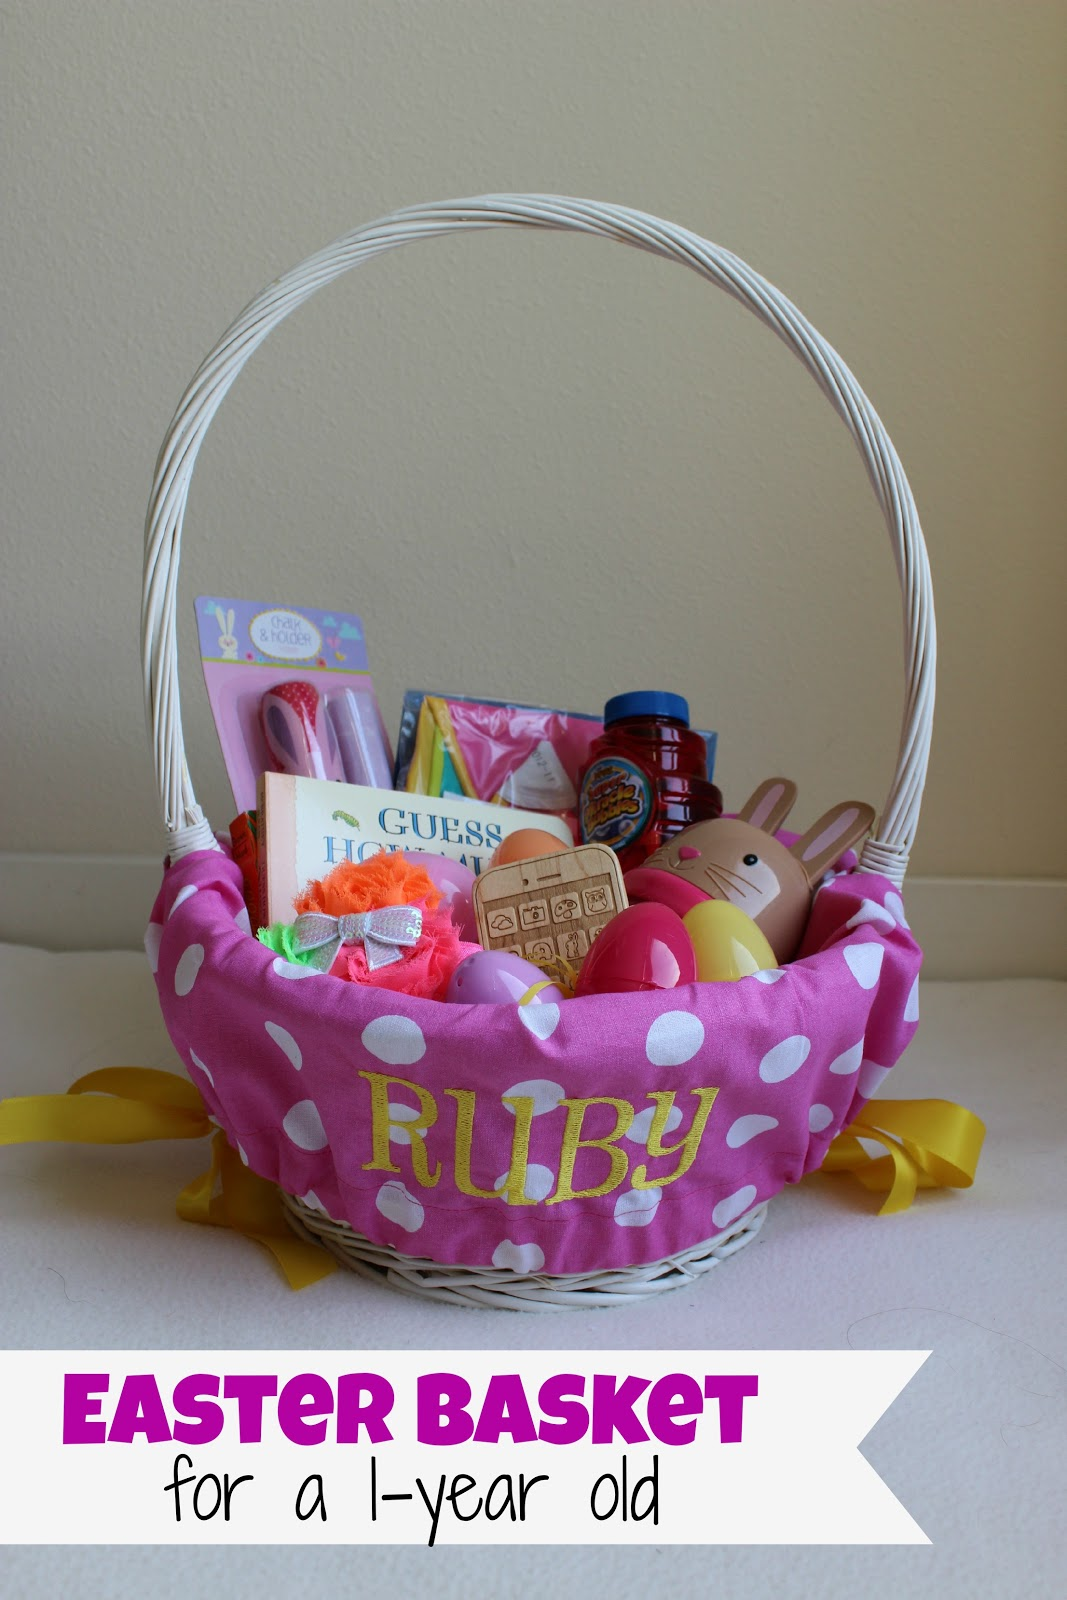 We g three rubys first easter basket a basket easter grass and easter eggs when i was growing up we got a new basket every year while that was cool negle Choice Image